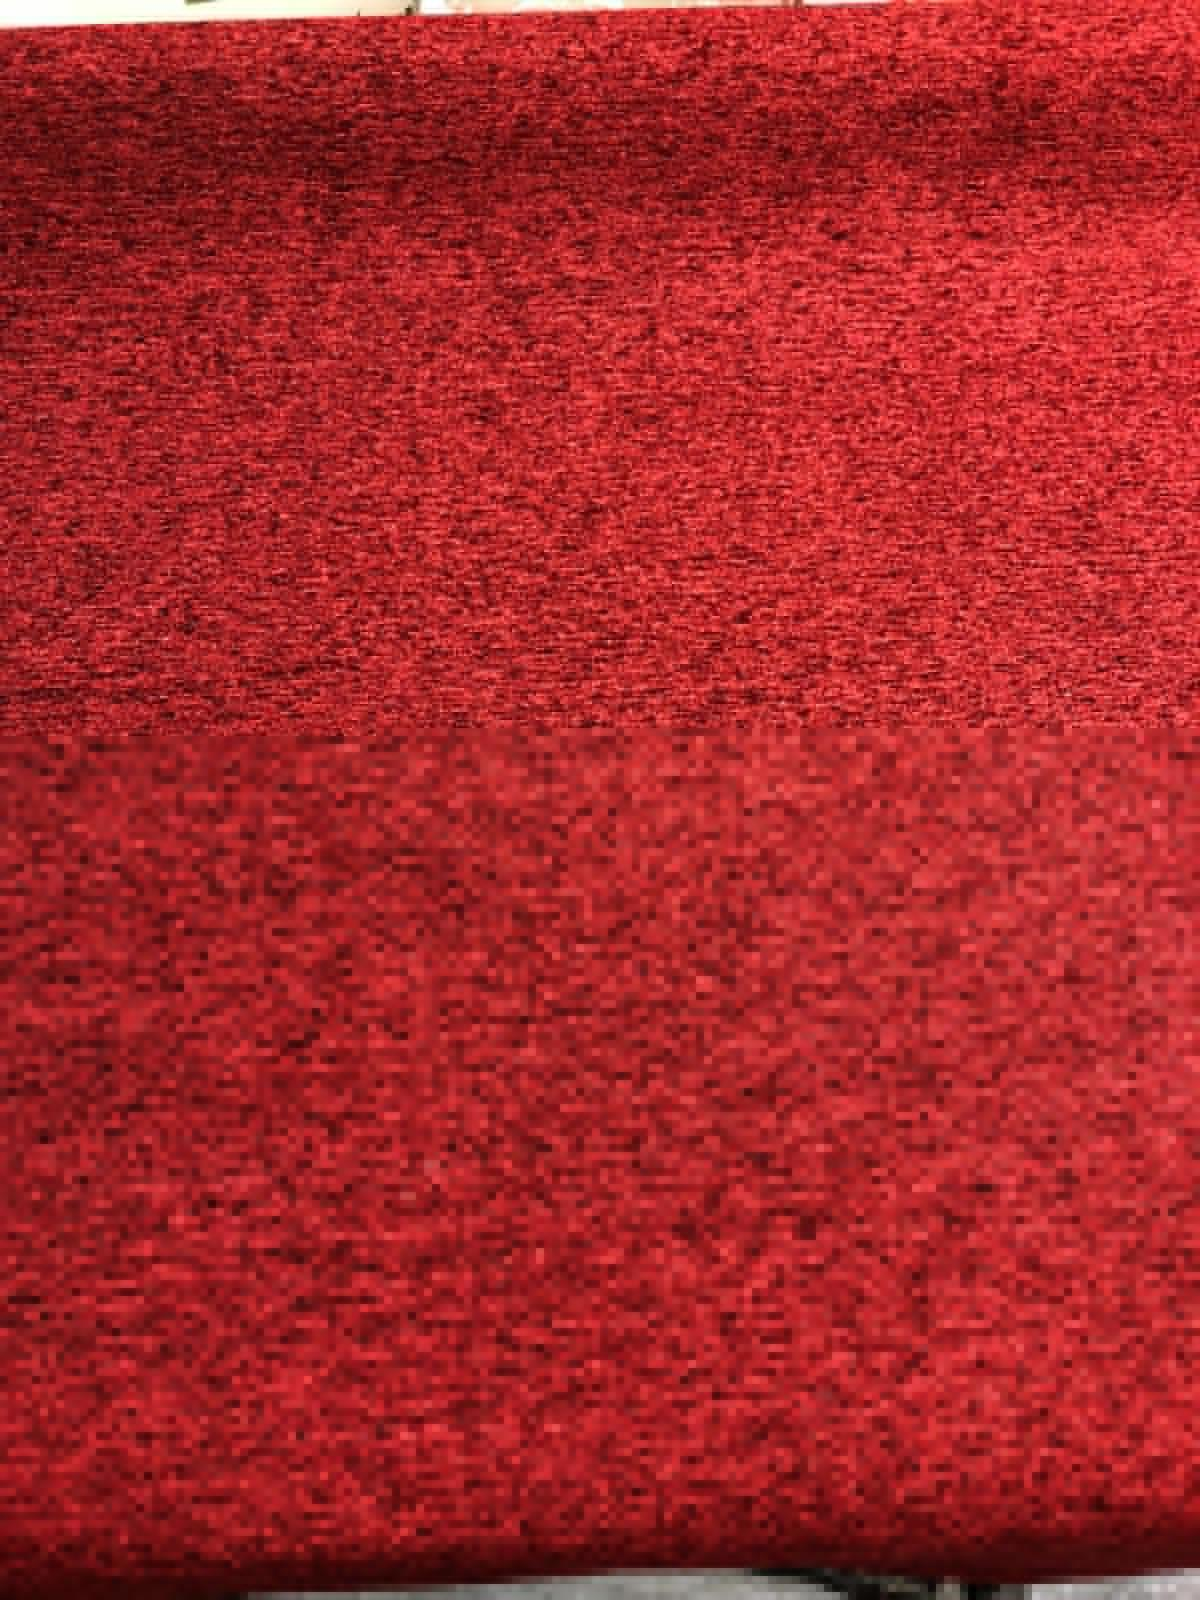 1.5 Yards Nubby Red Chenille Upholstery Fabric Ruby Basket Weave Textured Geometric